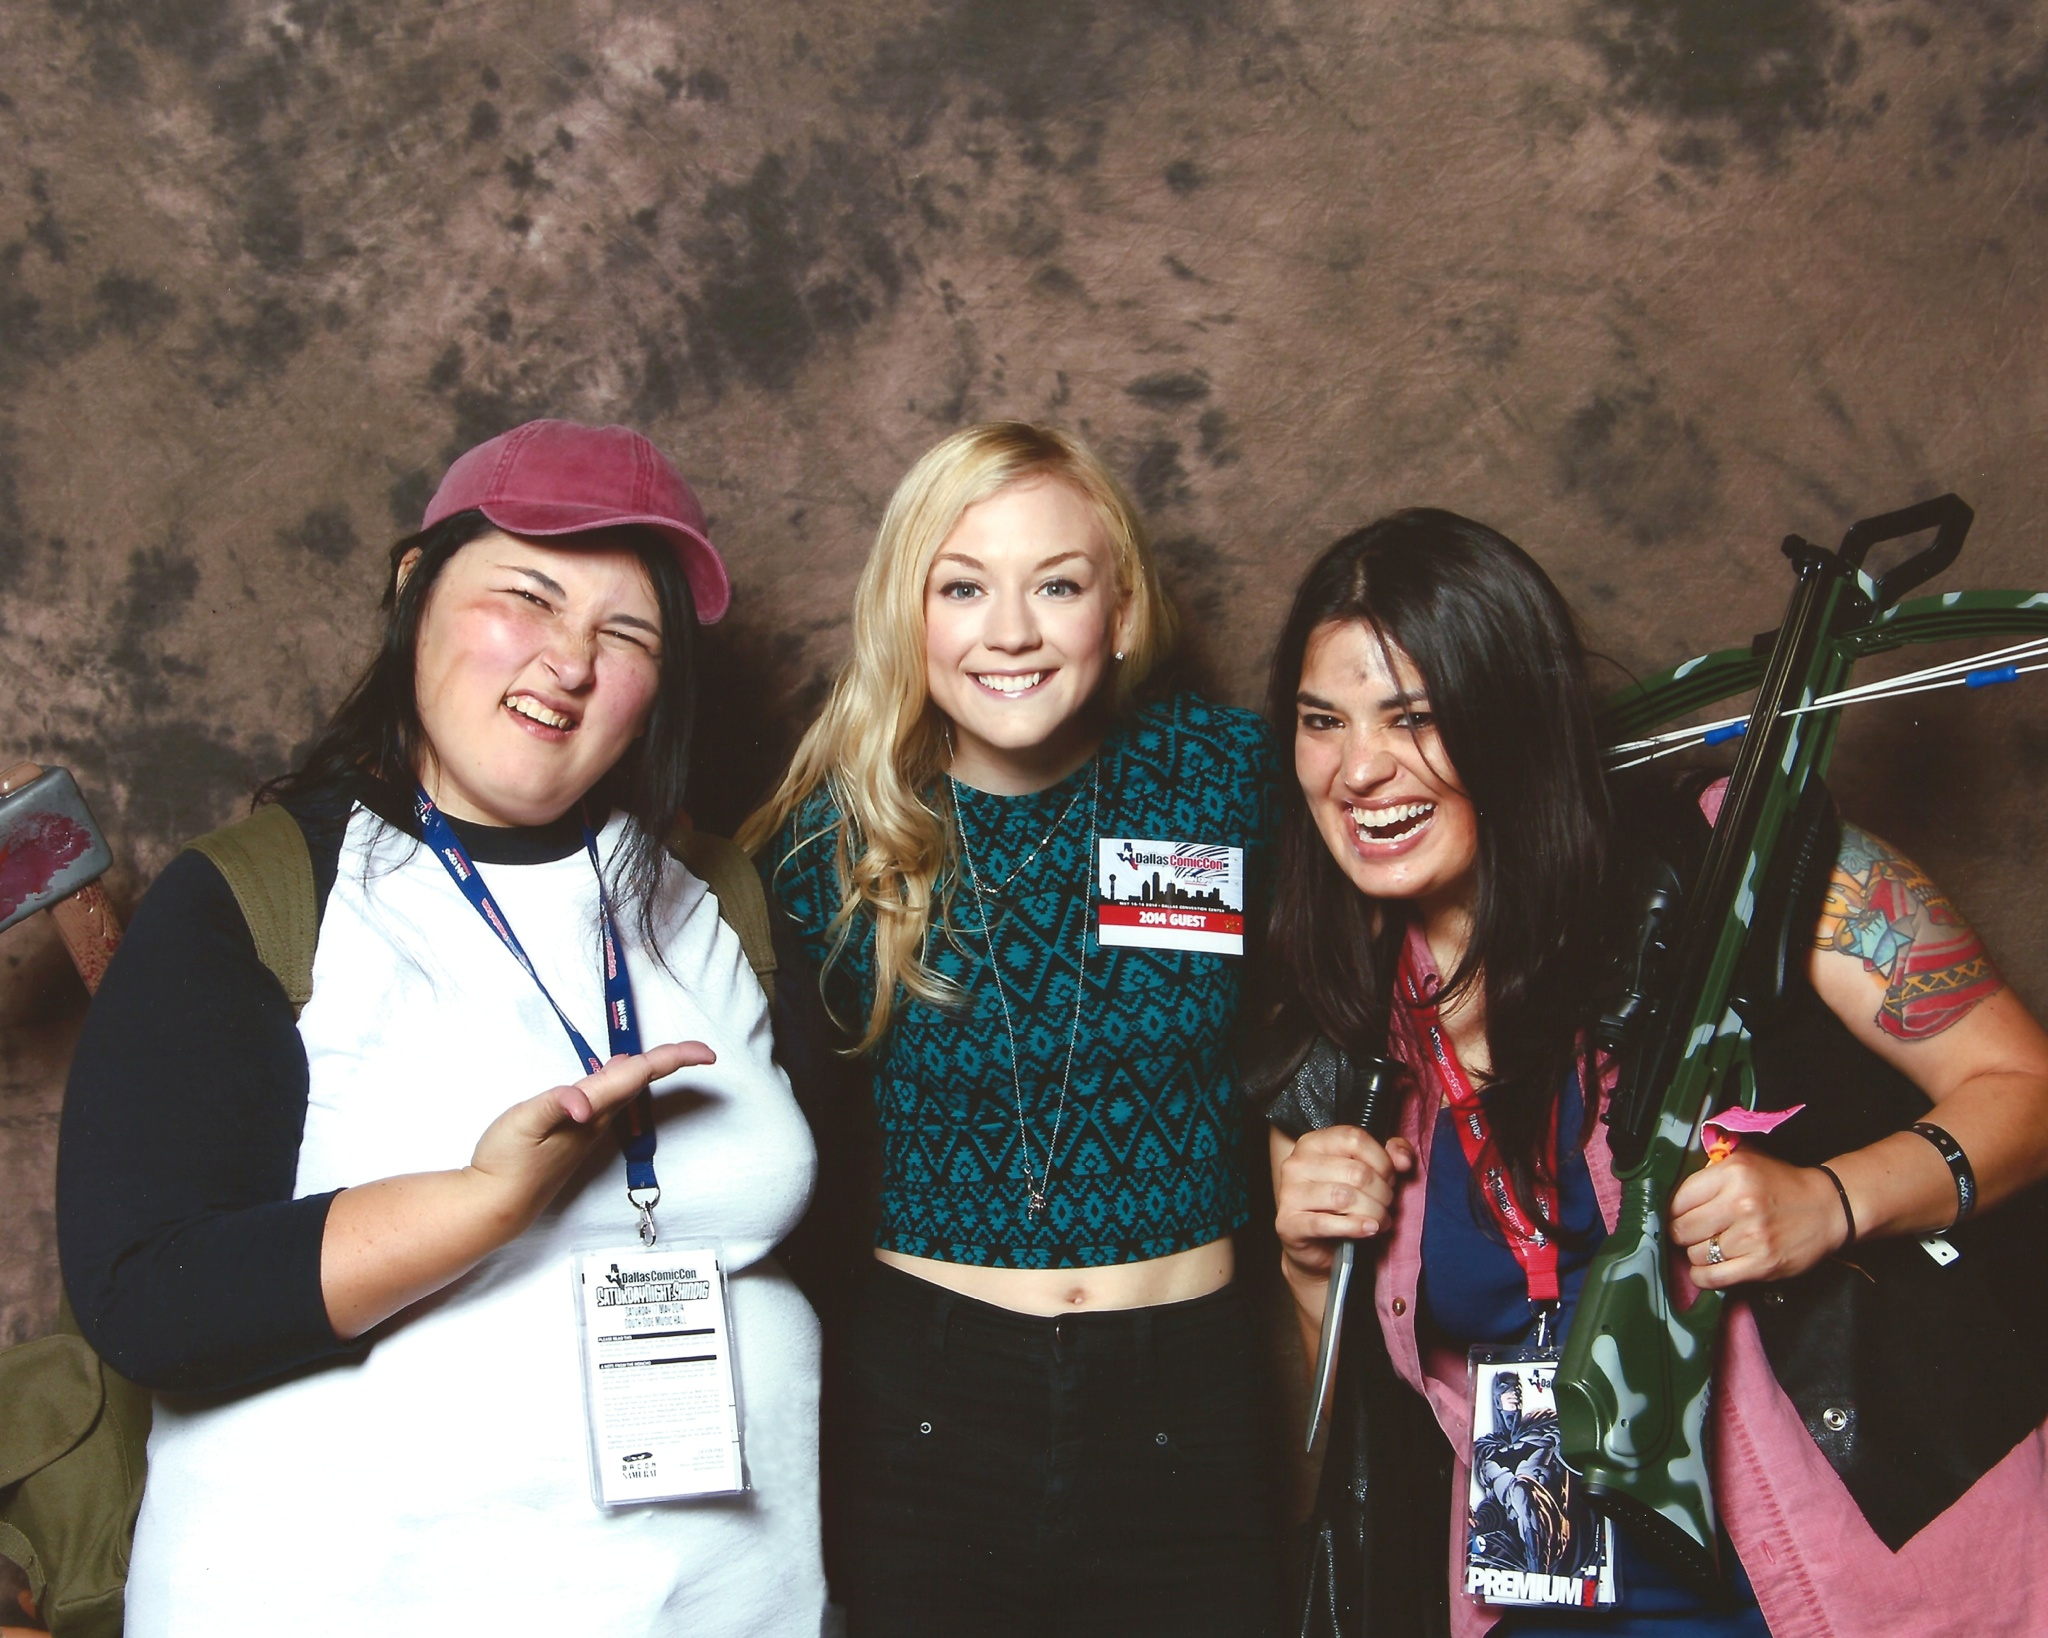 Emily Kinney is so cute!